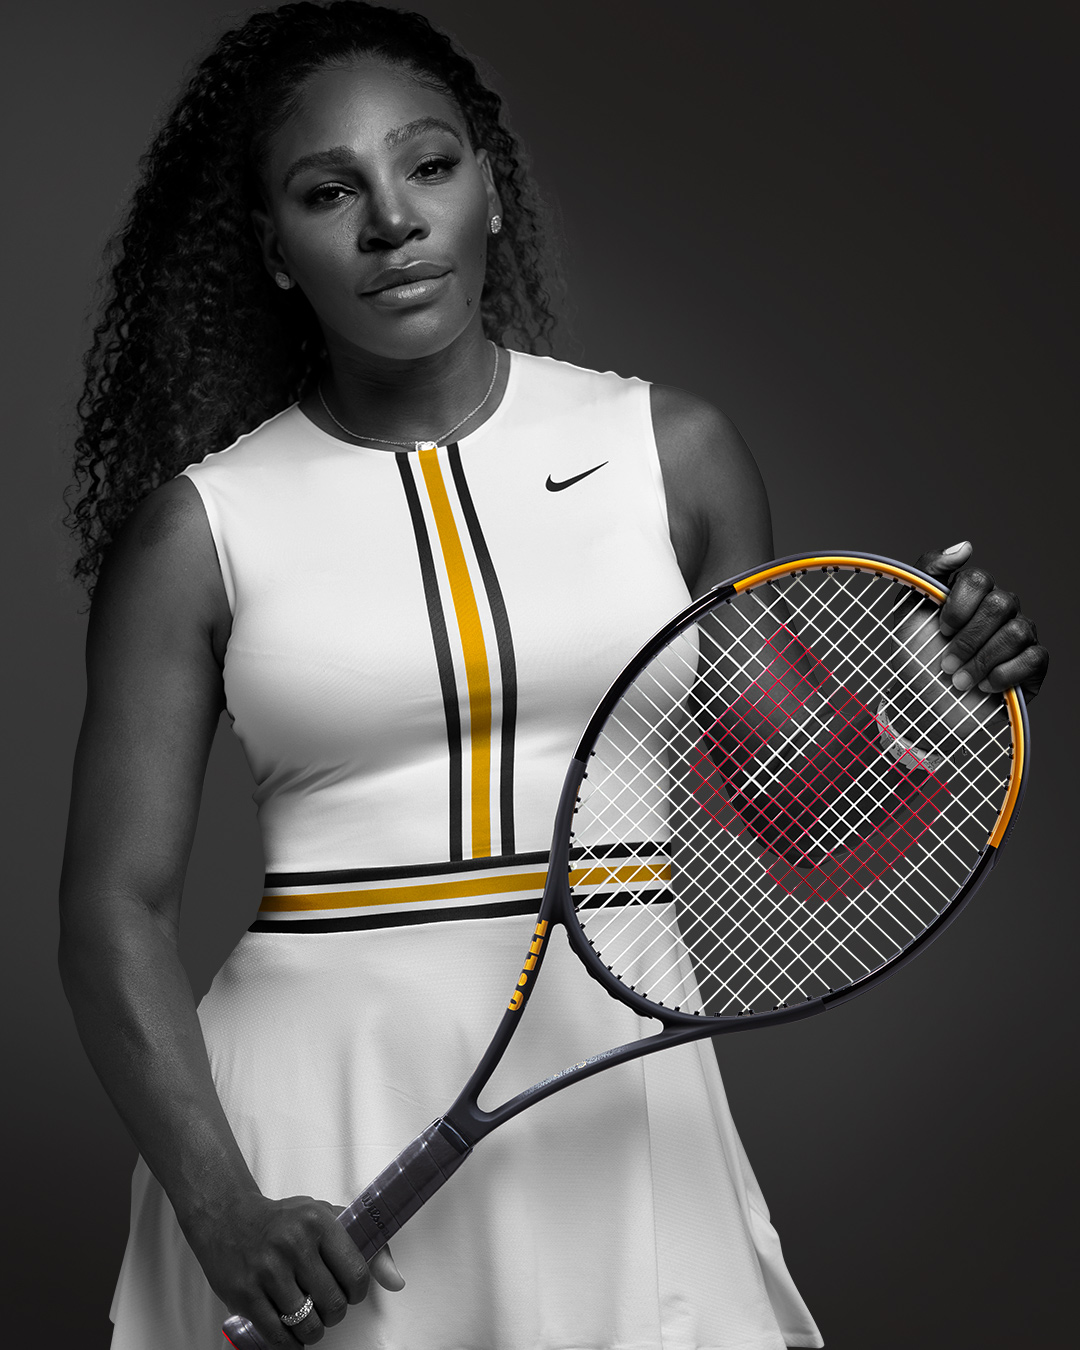 Serena Williams with the new Blade SW102 Autograph Racket